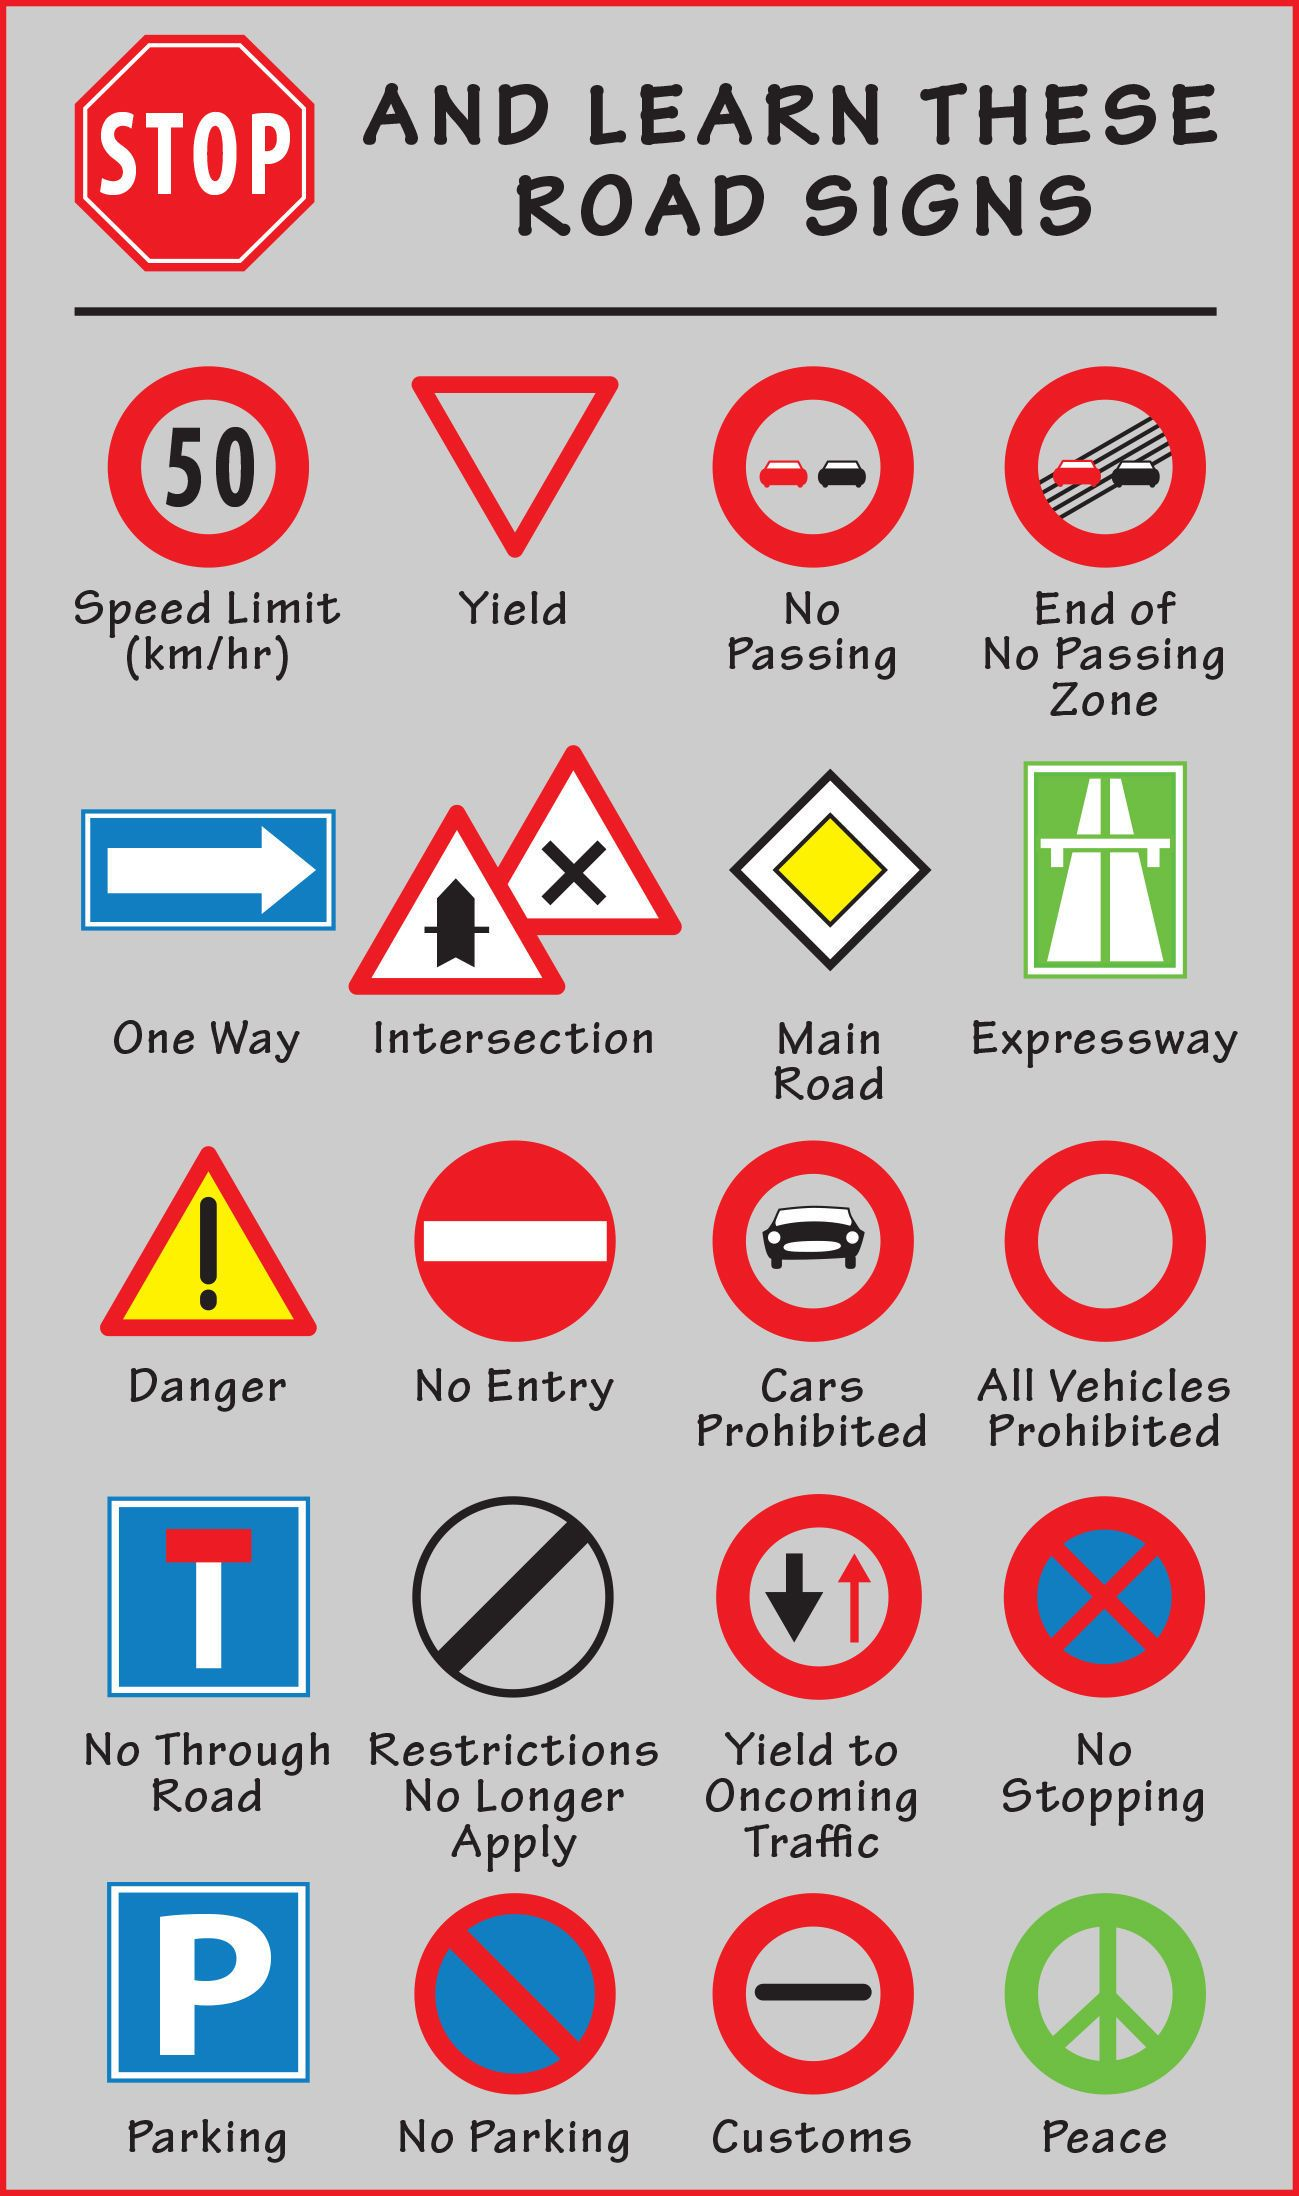 Road signs, Road rules, Driving tips